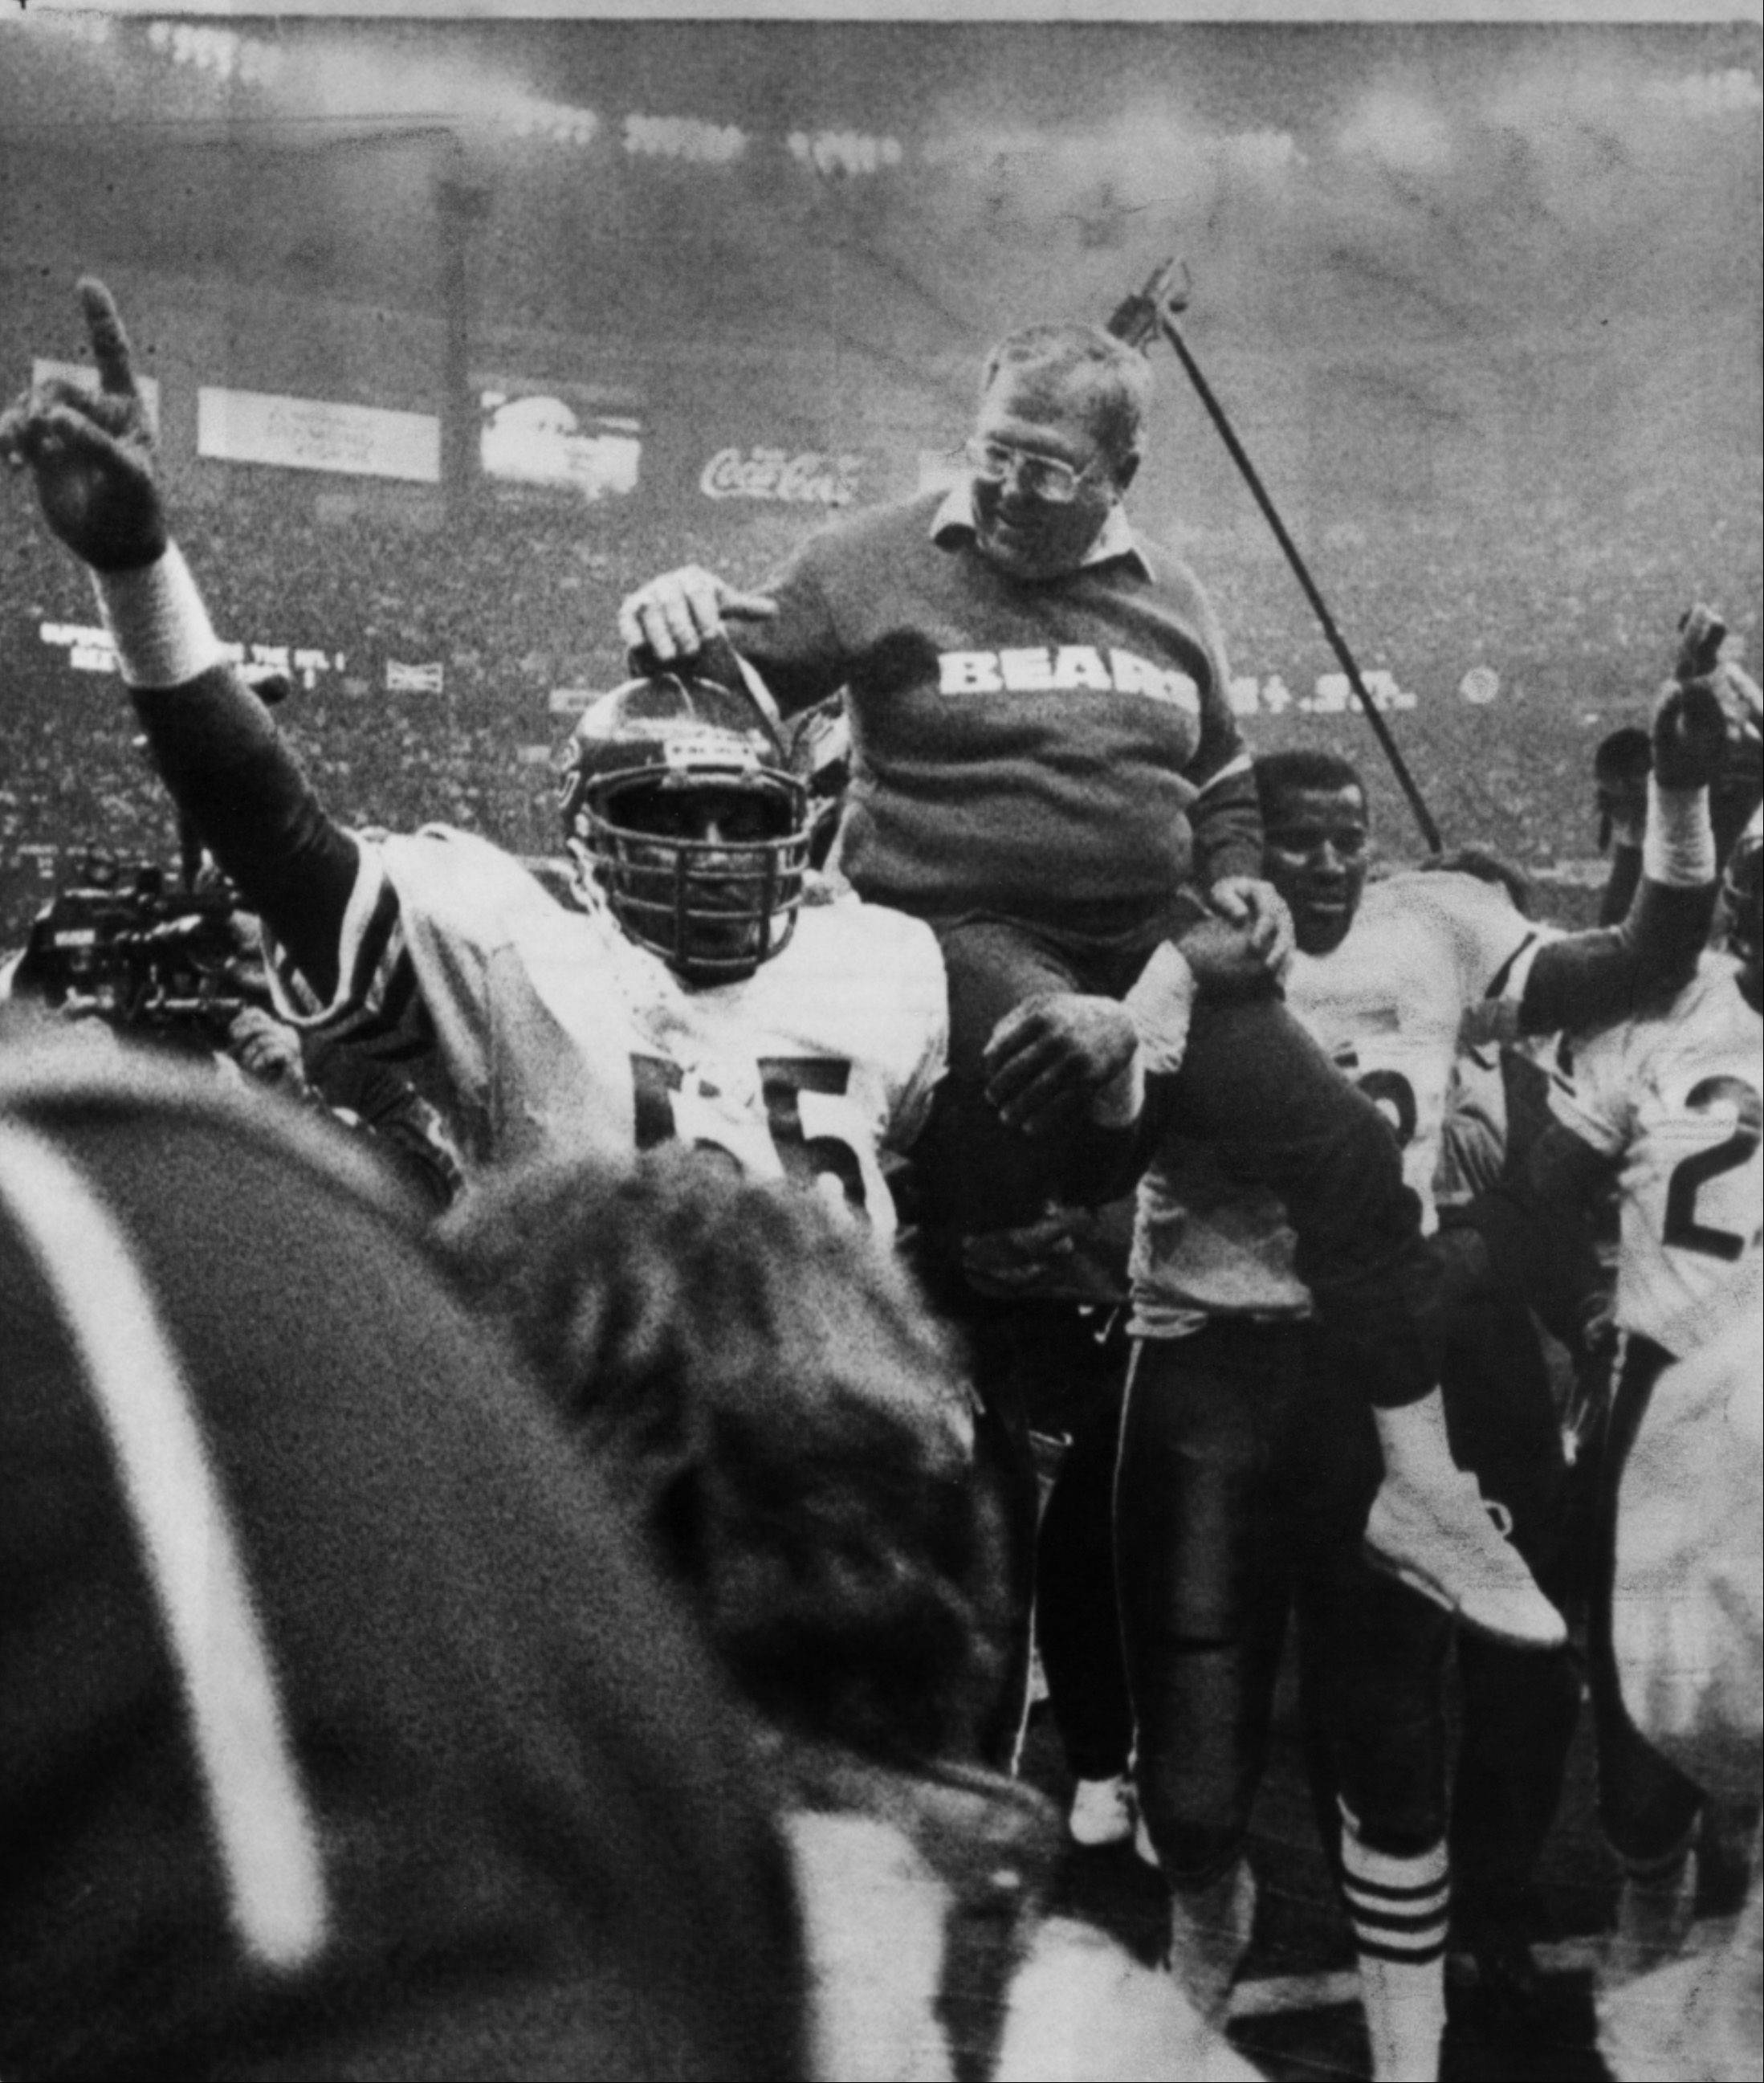 Bears Defensive coordinator Buddy Ryan is hoisted on the shoulders of Otis Wilson, left, and Richard Dent, right, after the 1986 Super Bowl against the New England Patriots at the Superdome in New Orleans.